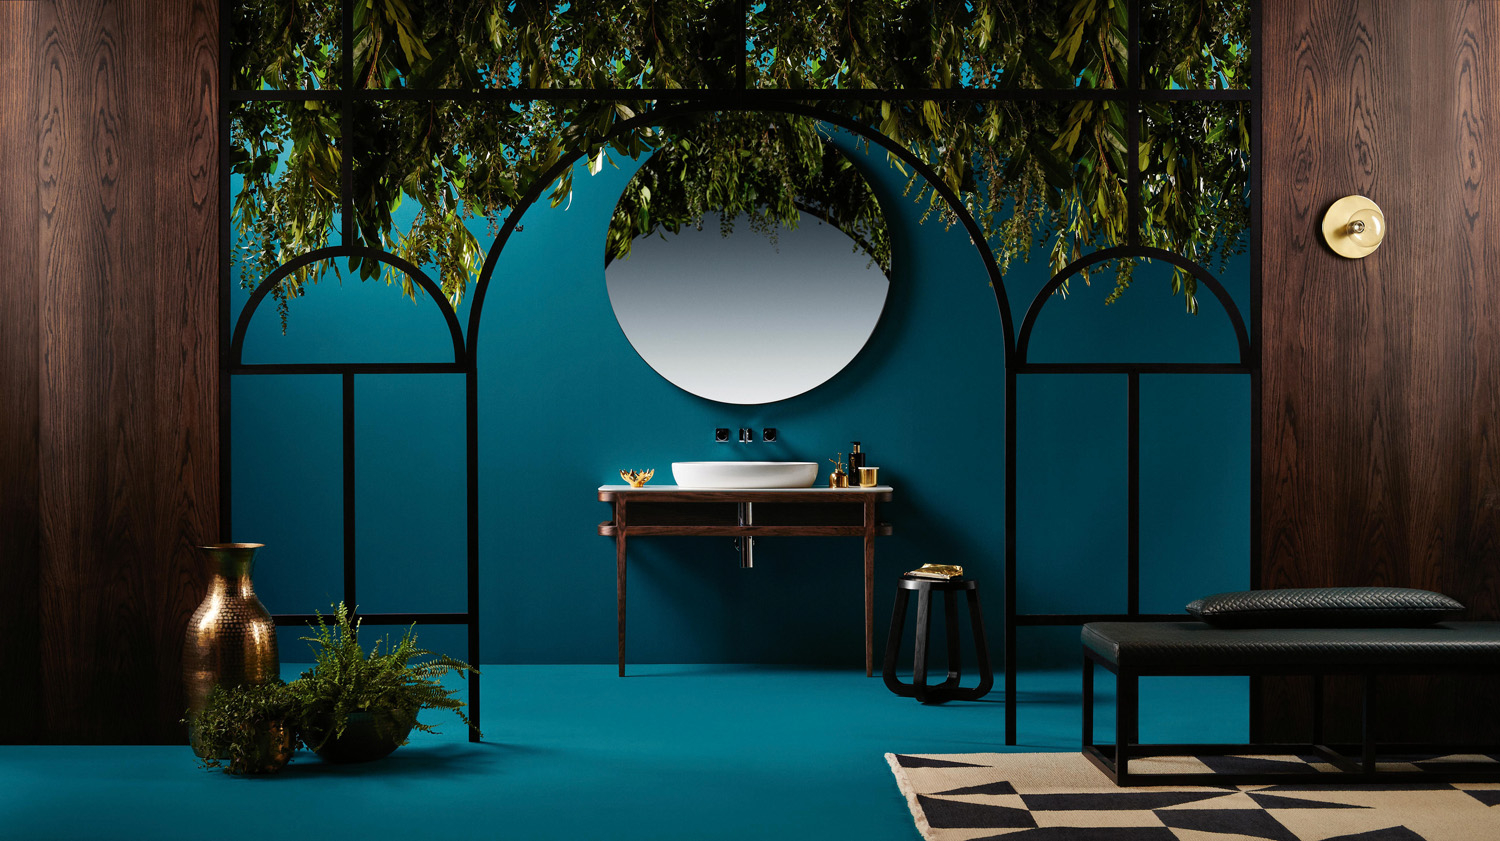 Lastest Overlay Frosted Mirror Offers A Functional And Stylish Bathroom Mirror